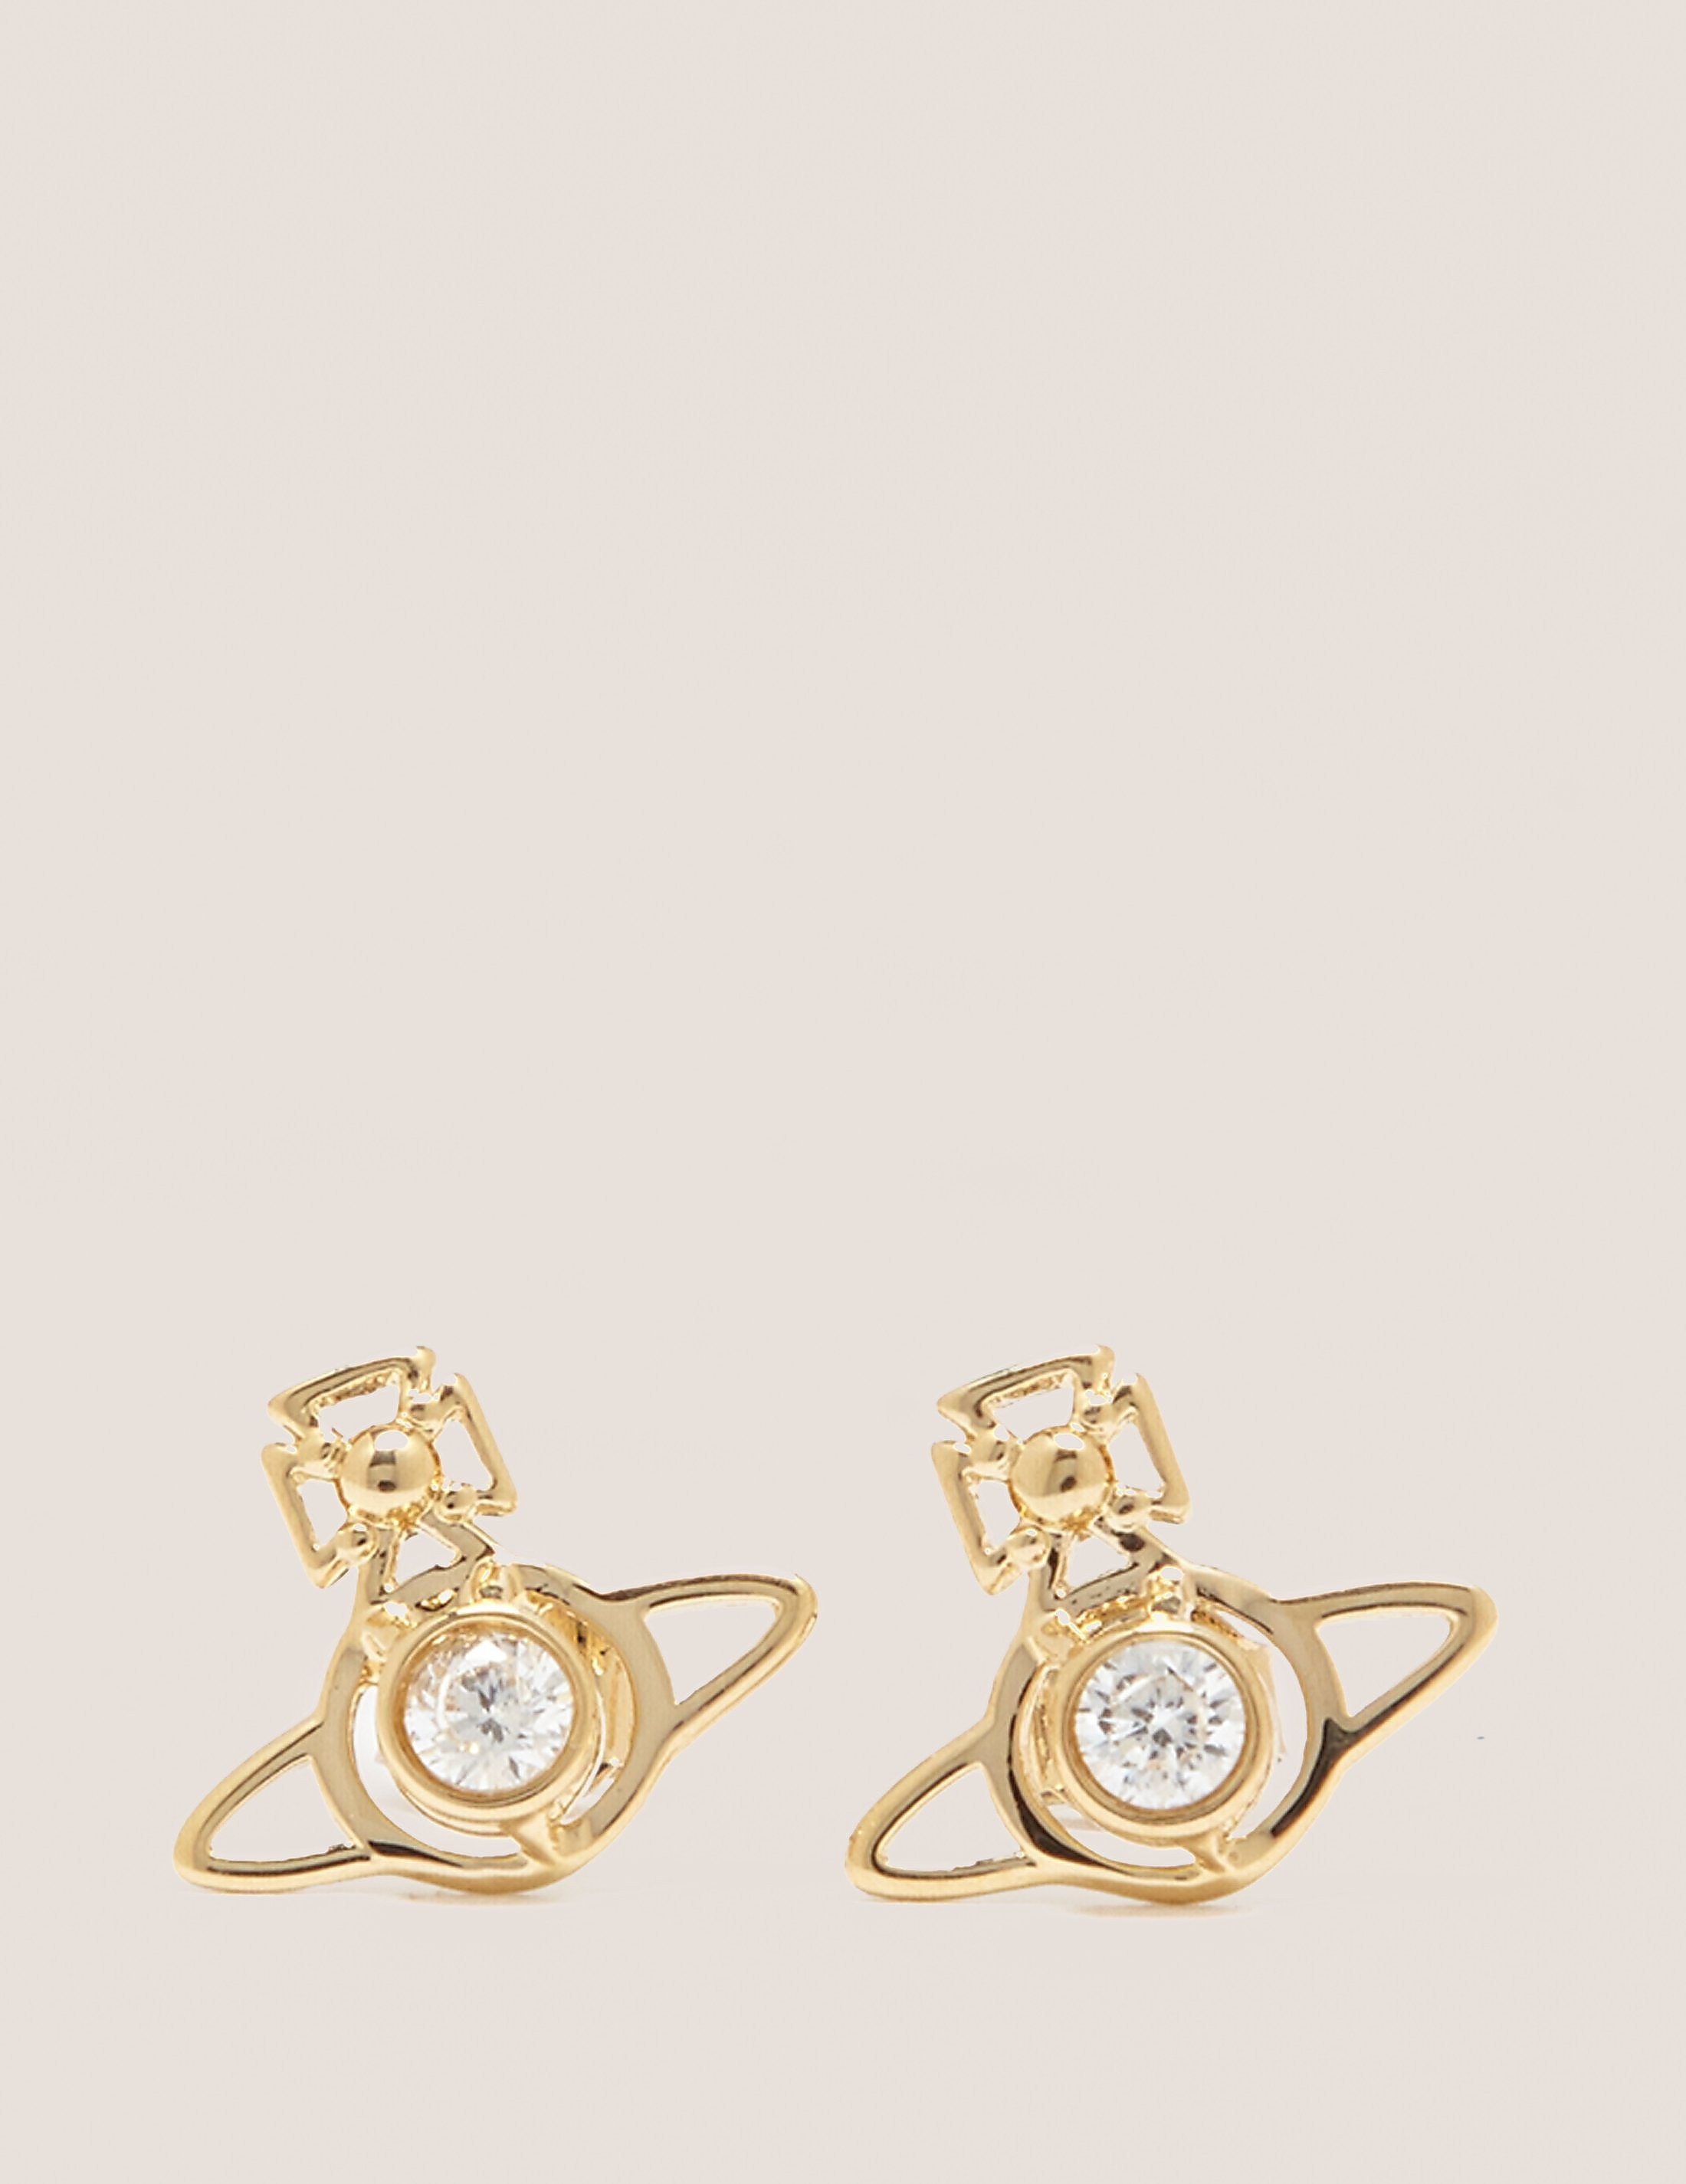 Vivienne Westwood Nora Stud Earrings